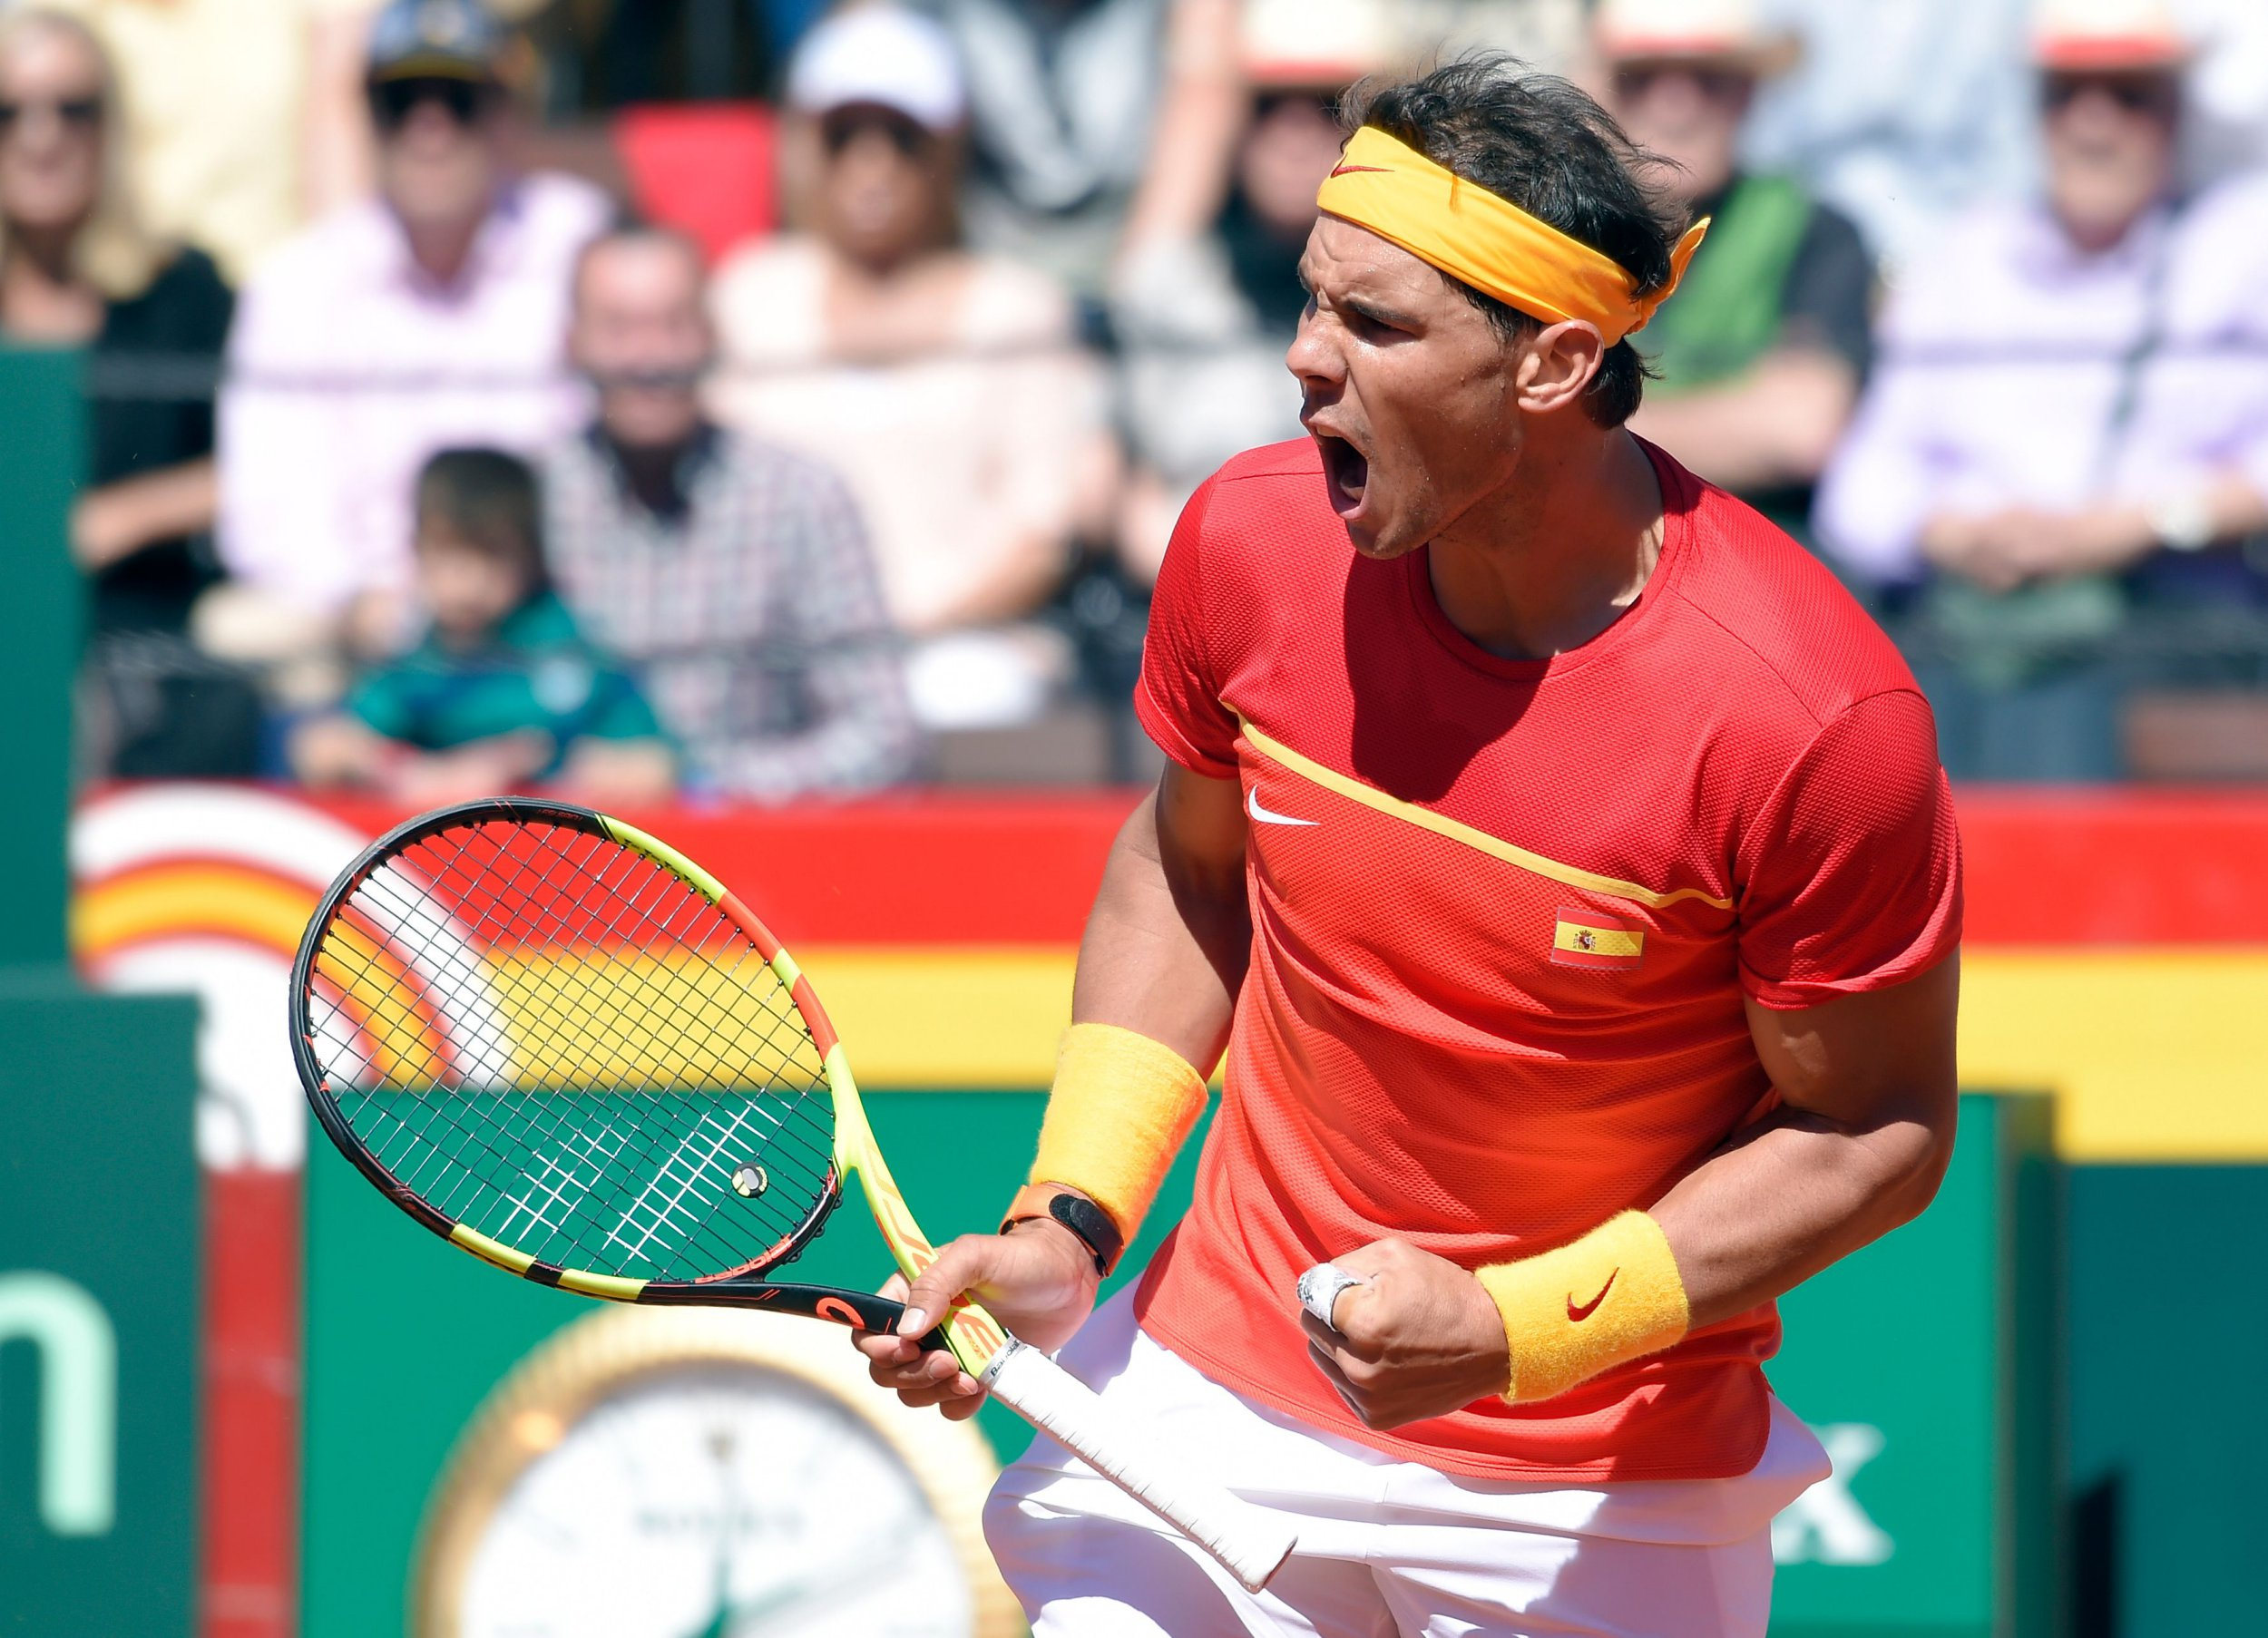 Ruthless Rafael Nadal sets up thrilling Davis Cup finale with confident Alexander Zverev victory